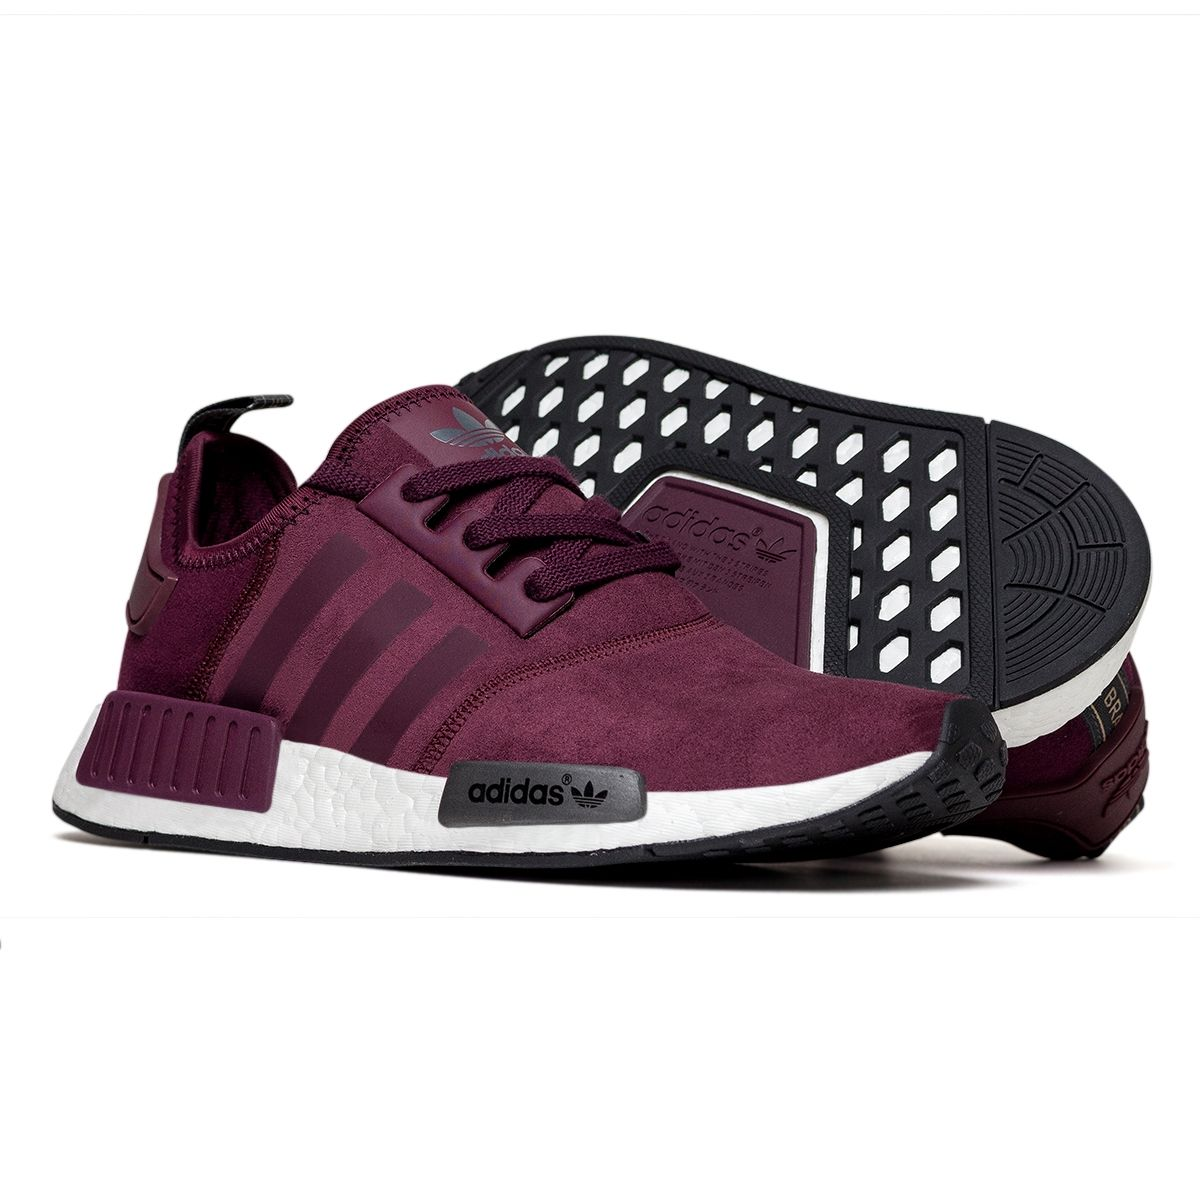 separation shoes f0af3 7d357 Adidas NMD Runner Feminino Burgundy